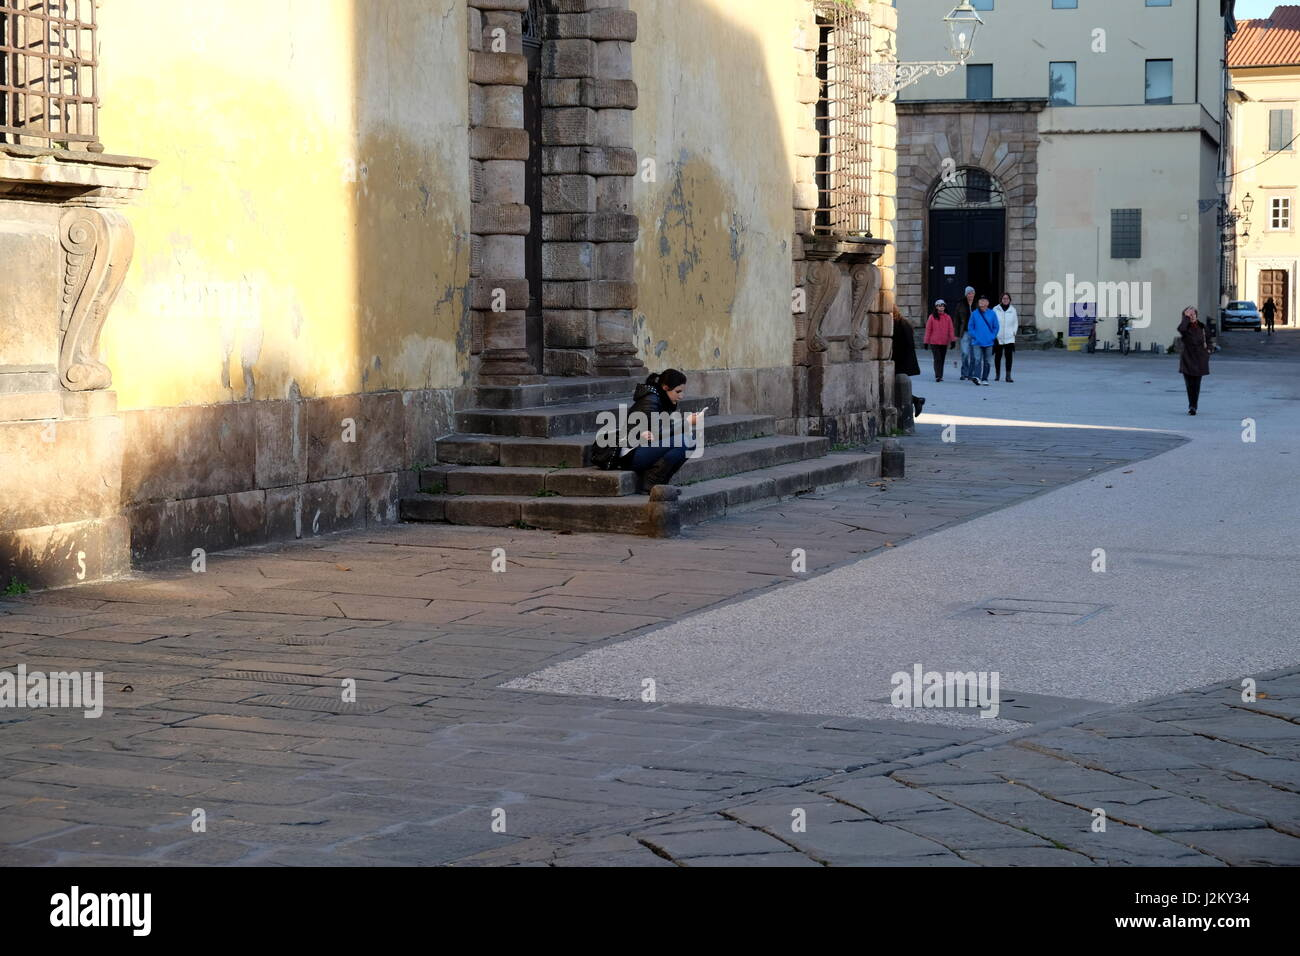 Girl (young woman) texting on smartphone in the street - Spontaneous unposed photography, central Lucca, Tuscany, - Stock Image